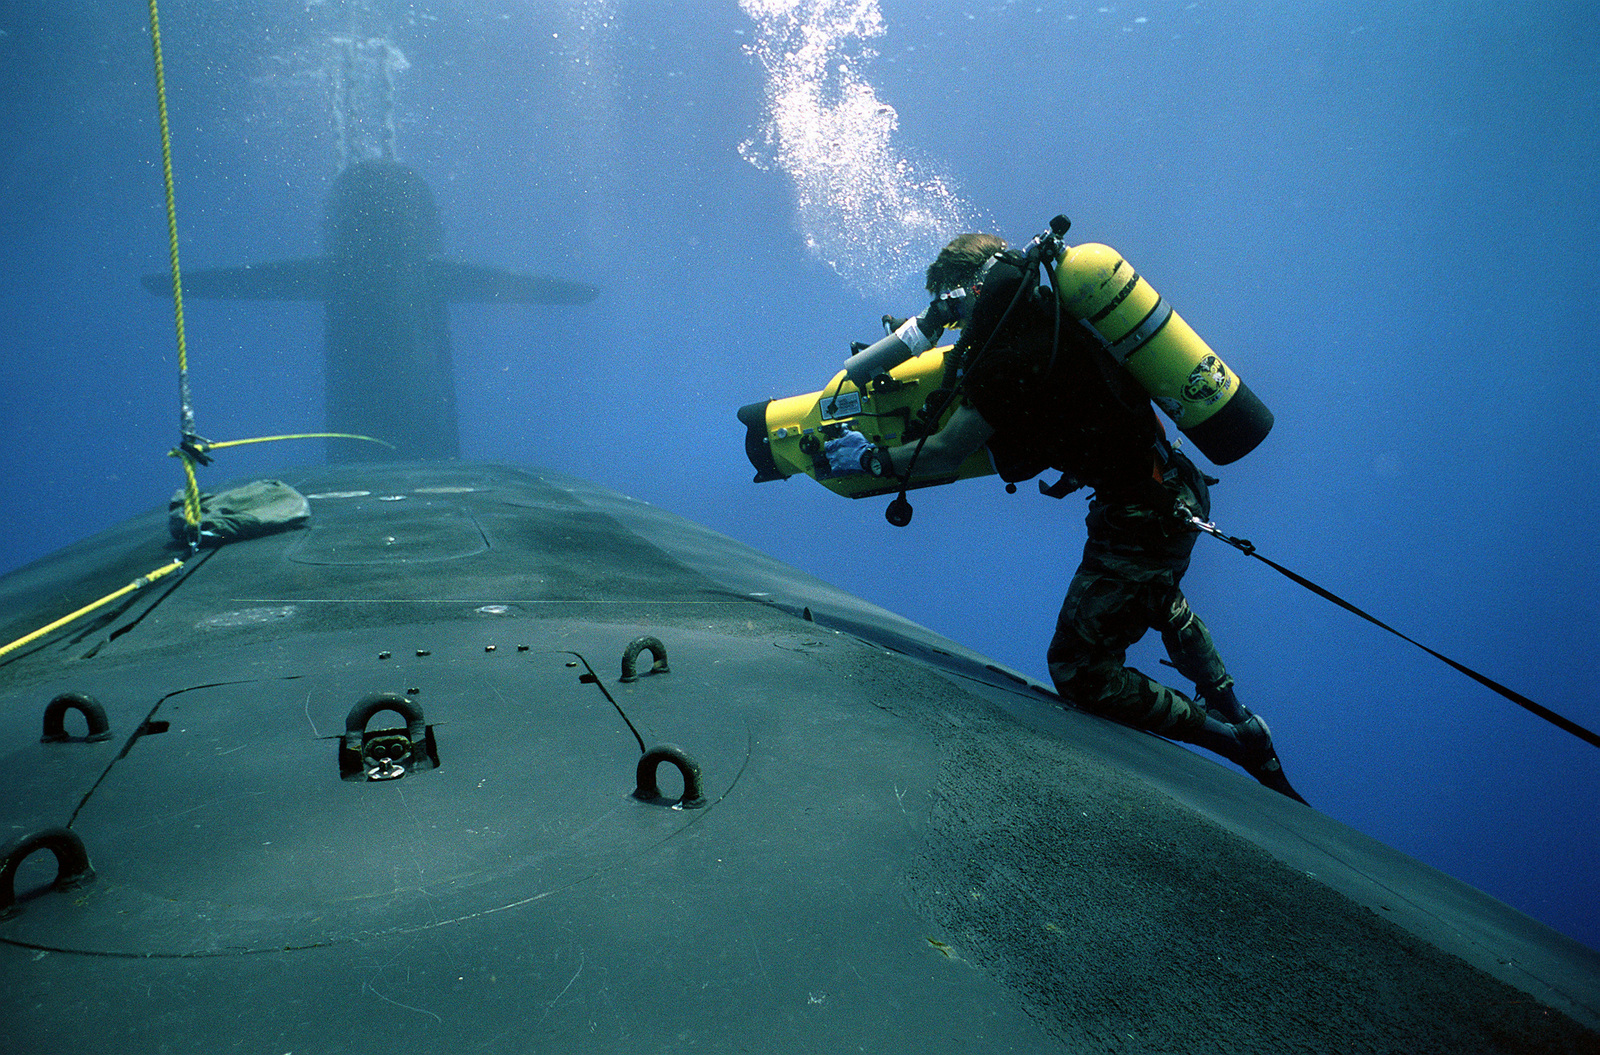 A photographer's mate/diver aims his camera at a hatch in the forward hull of the submerged nucelar-powered strategic missile submarine USS WOODROW WILSON (SSBN-624) while waiting for a Navy sea-air-land (SEAL) team member of the SEAL team as they practice entering and exiting the submarine during lock-out procedures off the coast of Puerto Rico.